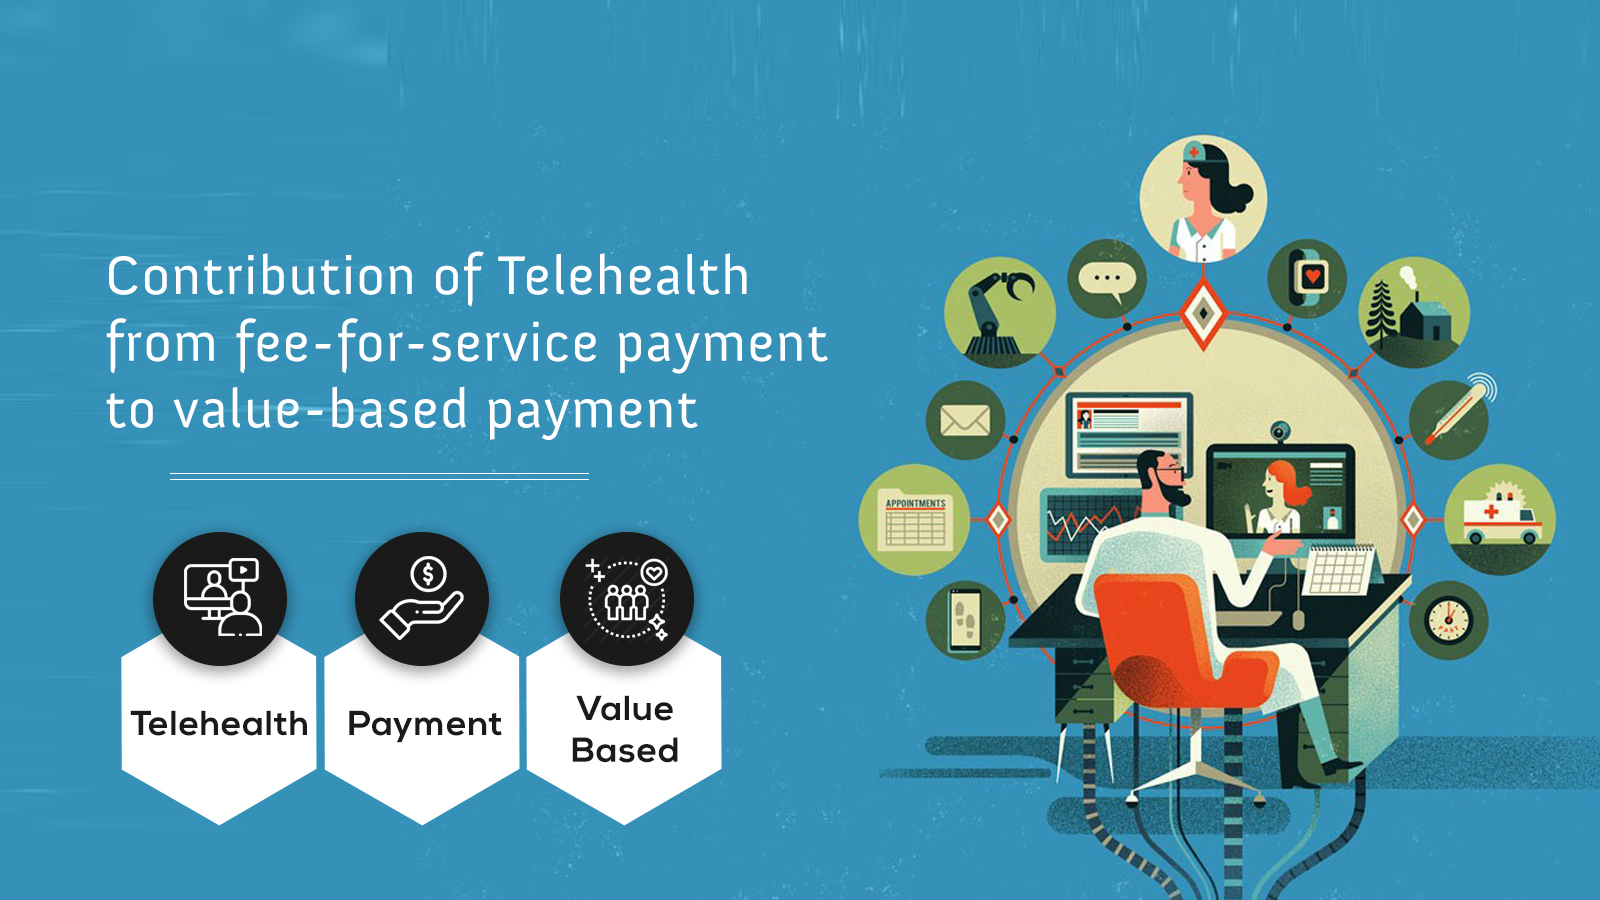 Contribution of Telehealth from fee-for-service payment to value-based payment